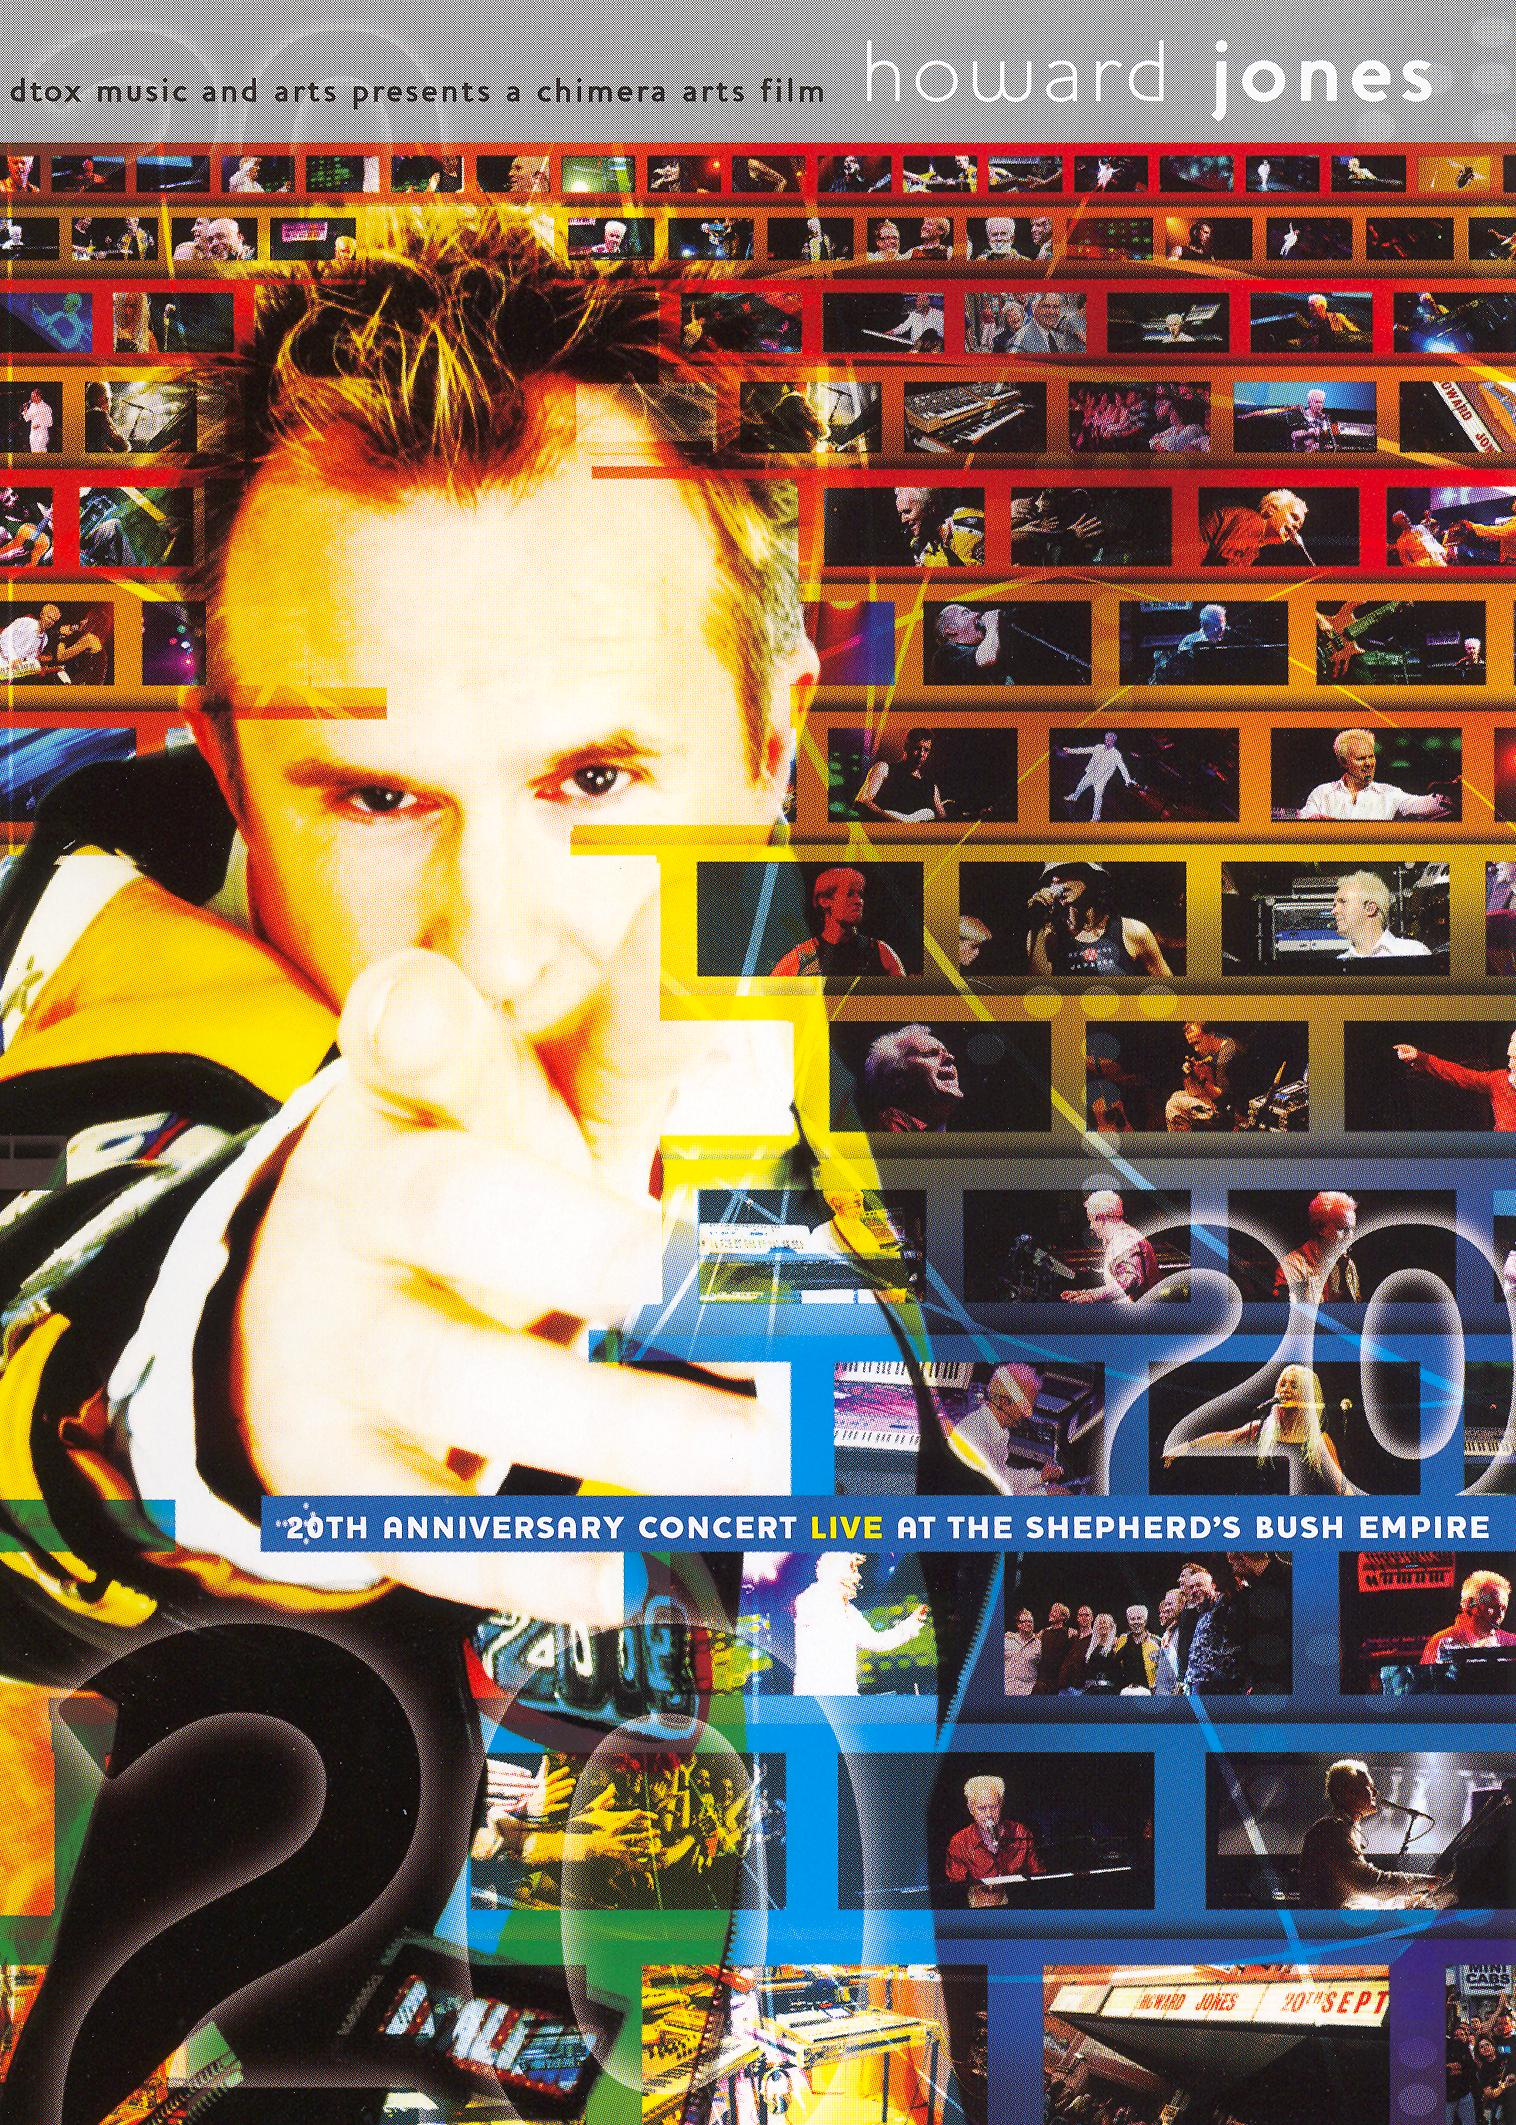 Howard Jones: 20th Anniversary Concert Live at the Shepherd's Bu